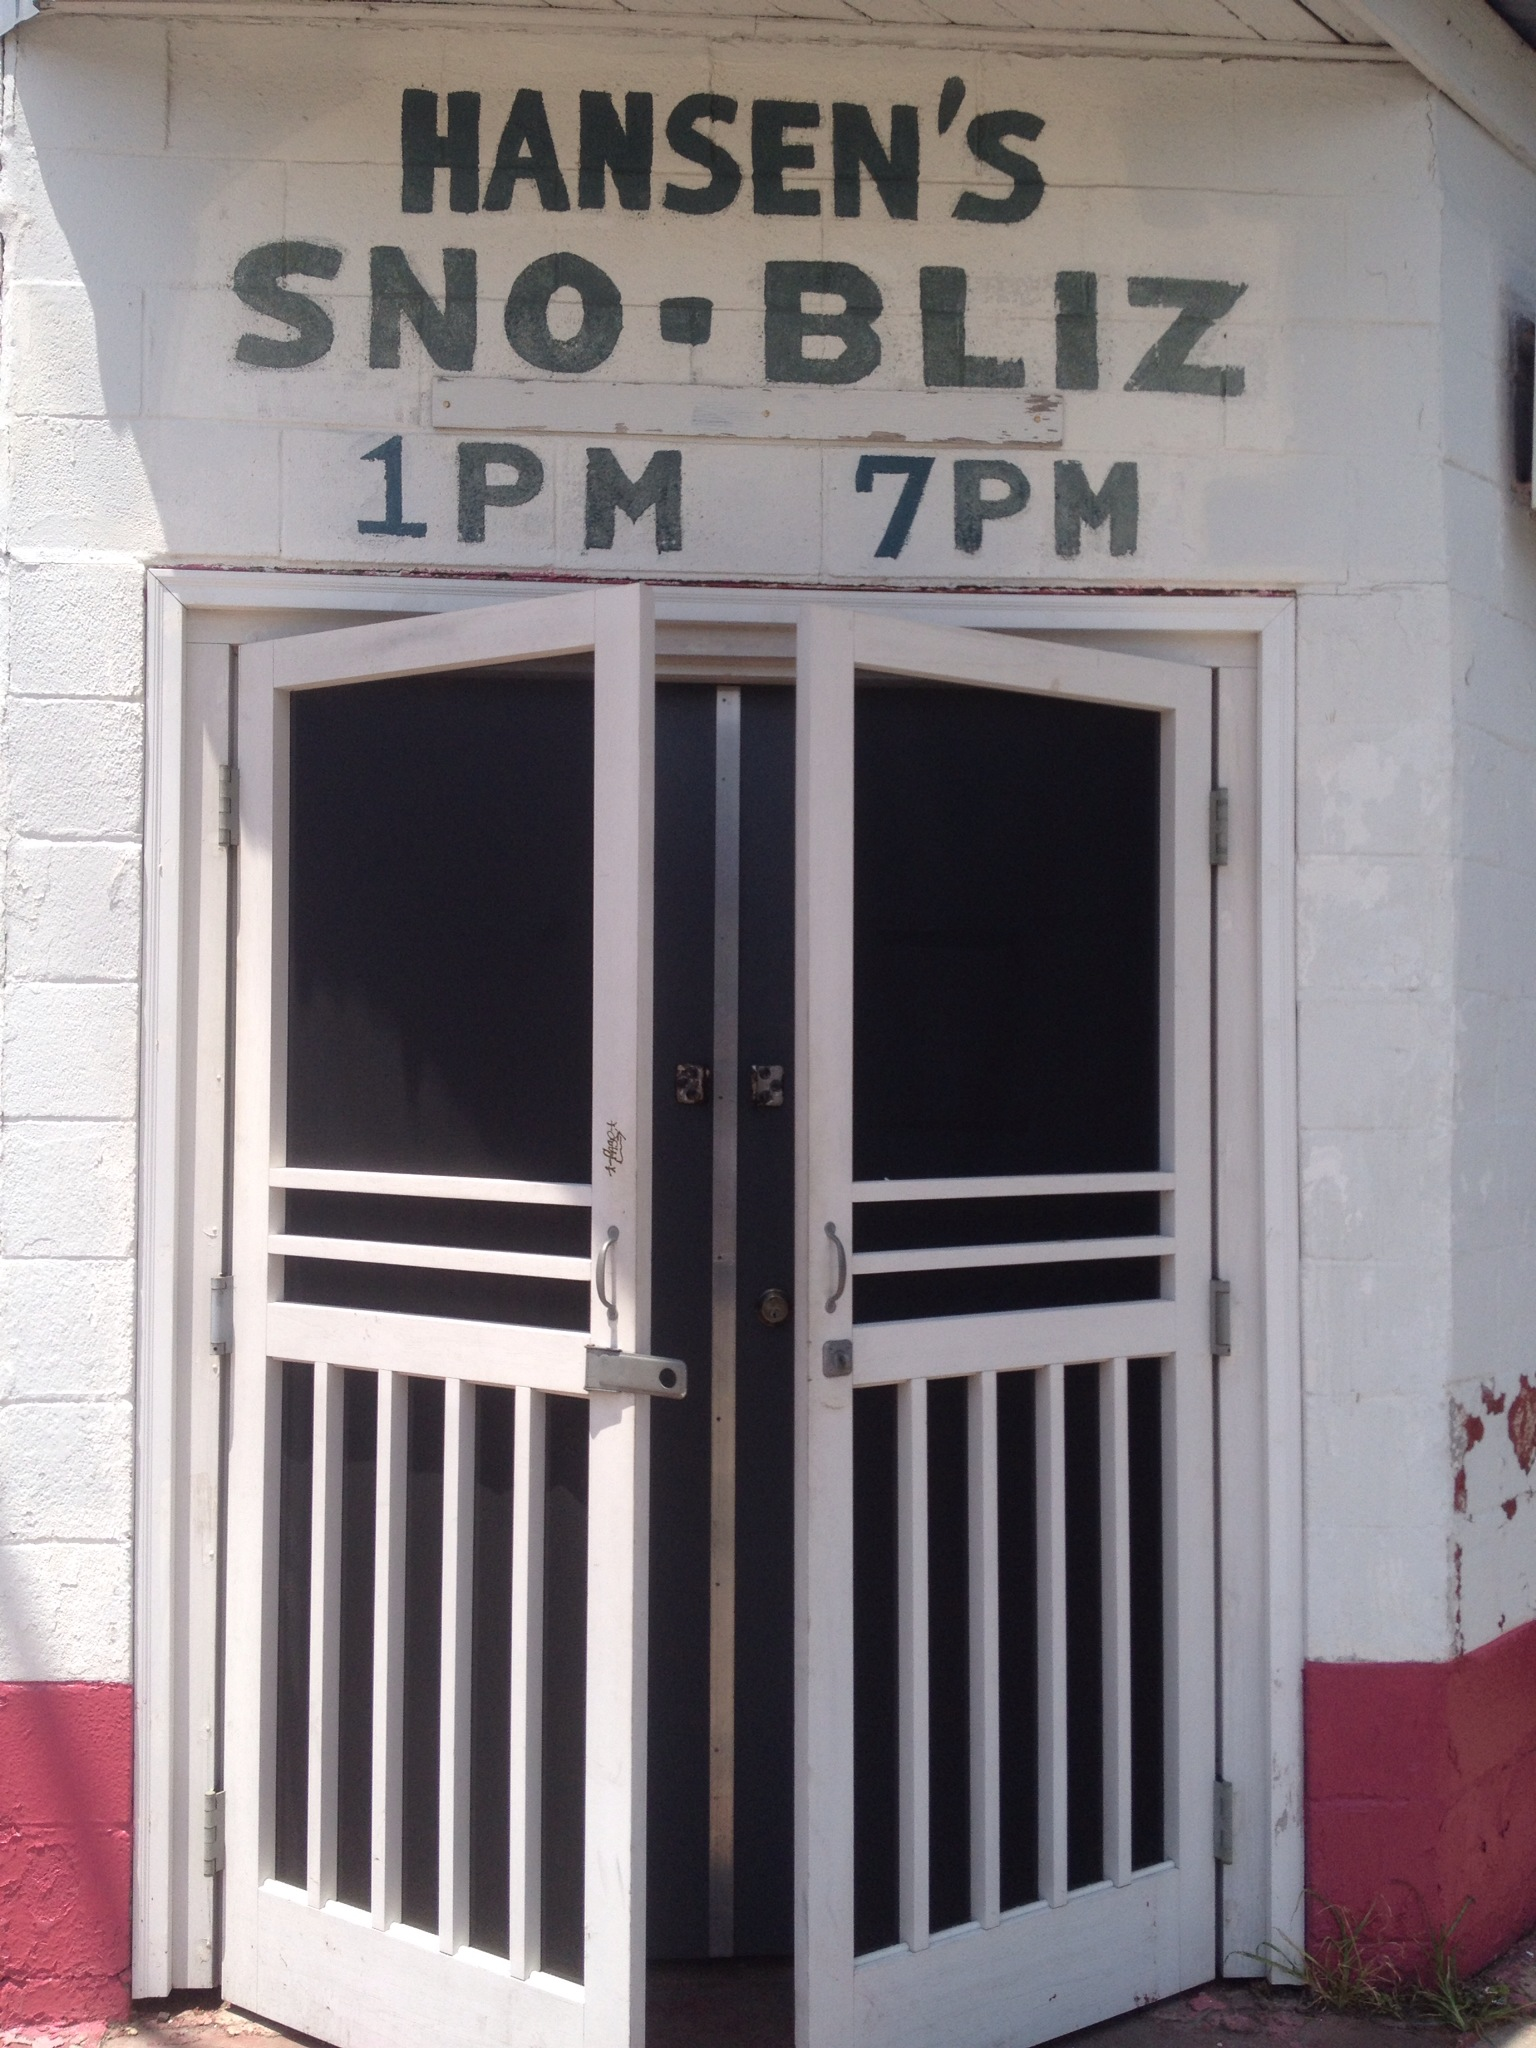 Hansen's Sno Bliz in New Orleans home of the original snow ball